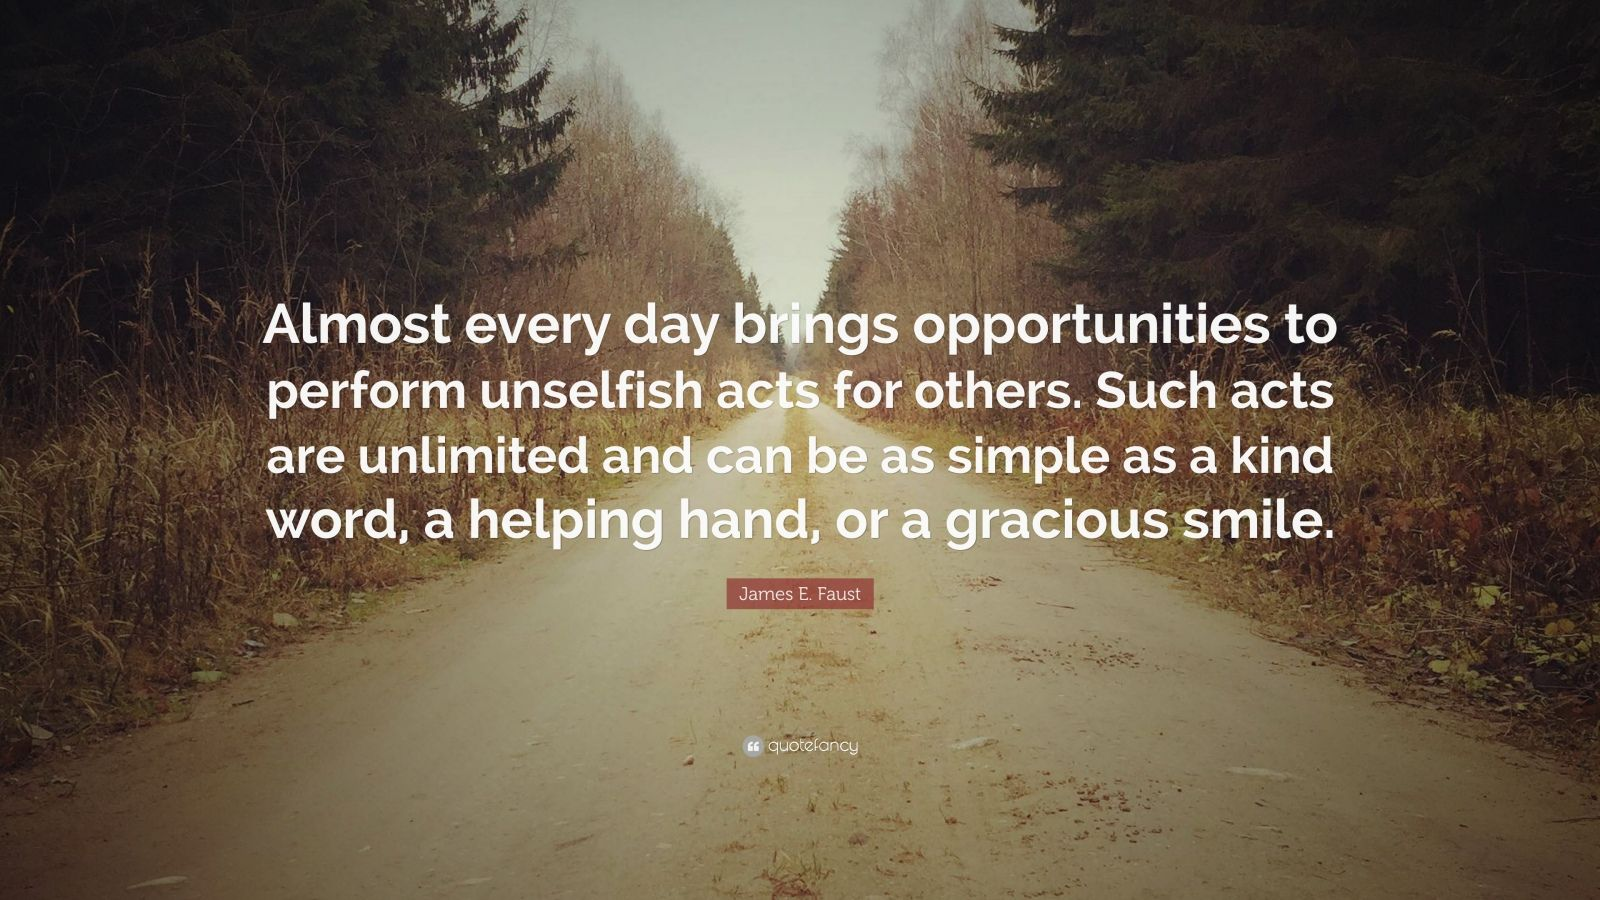 """James E. Faust Quote: """"Almost every day brings opportunities to perform unselfish acts for others. Such acts are unlimited and can be as simple as a kind word, a helping hand, or a gracious smile."""""""